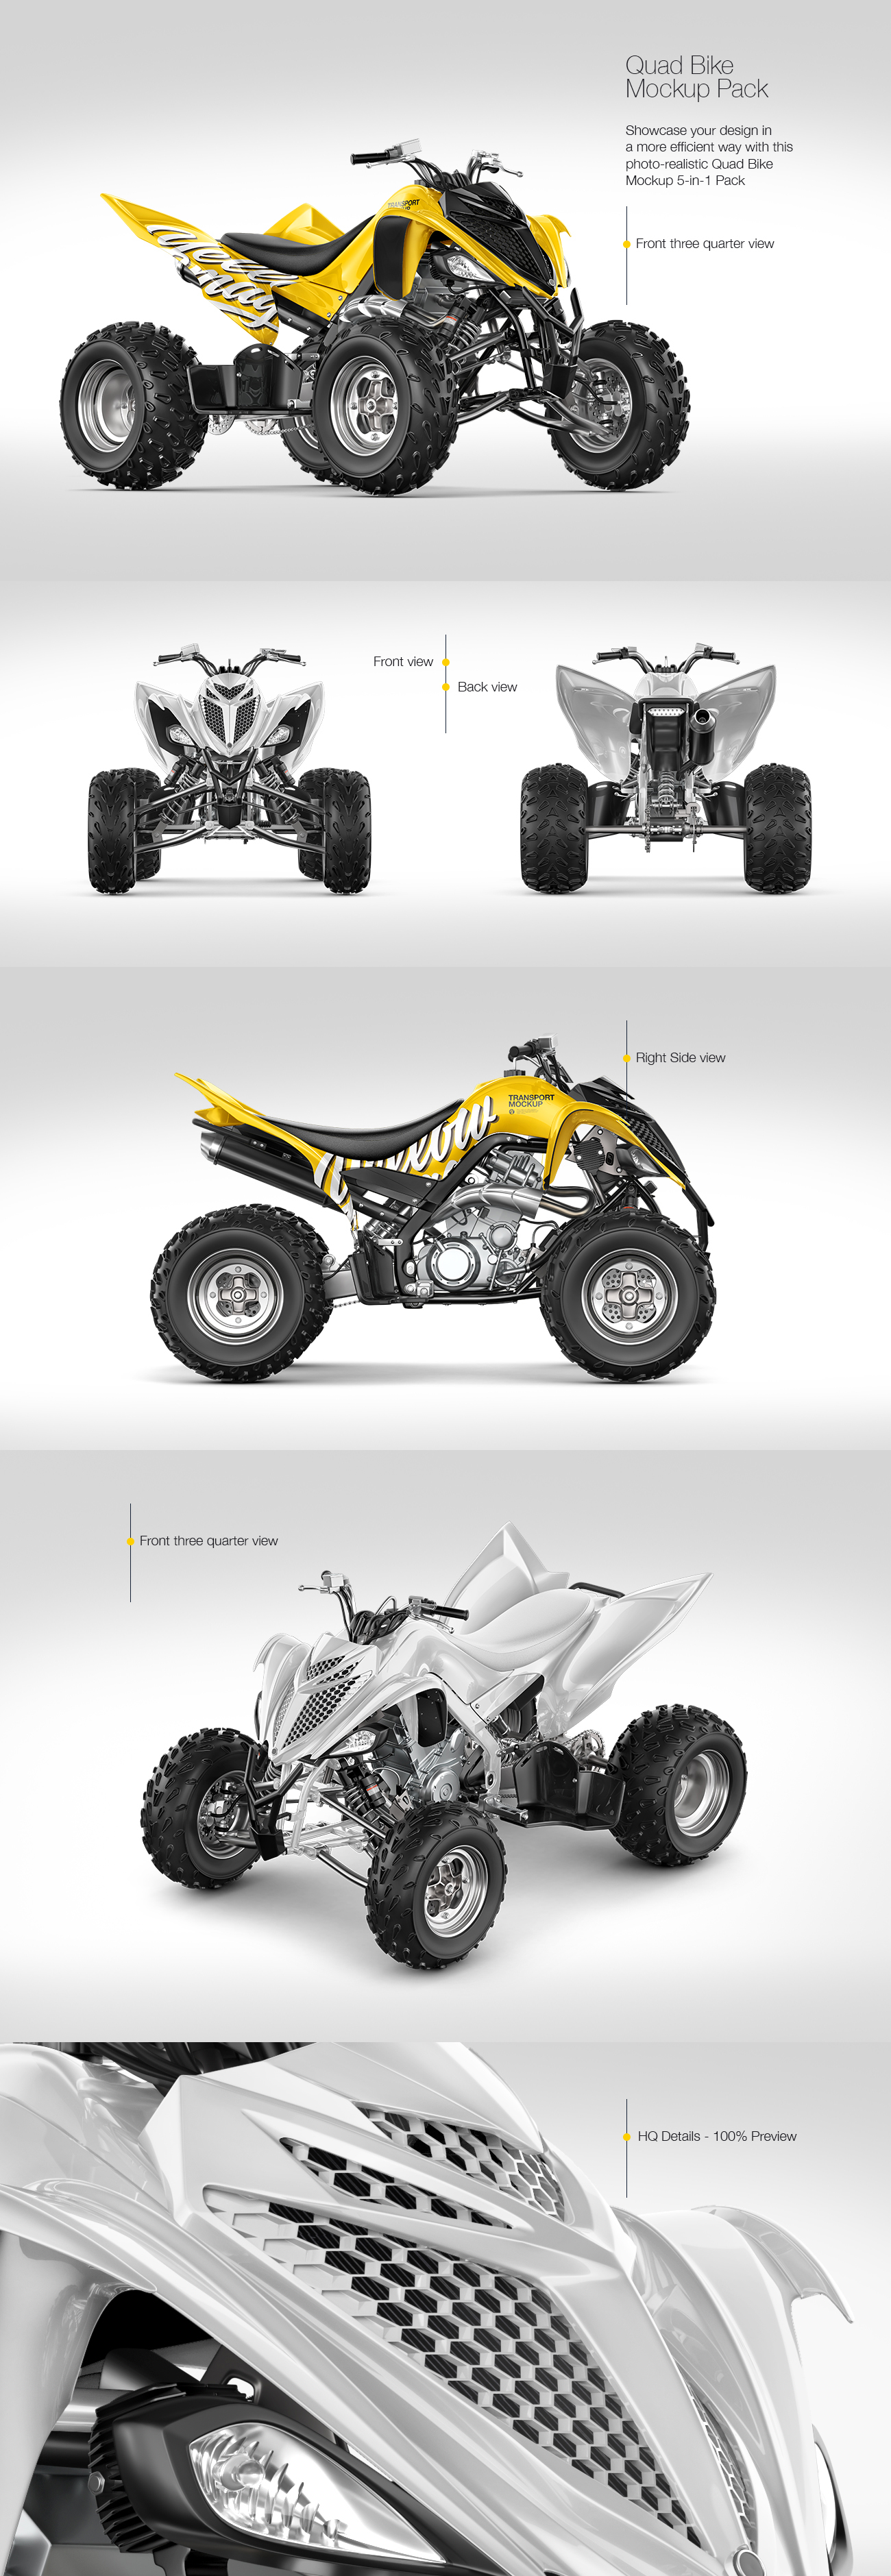 Quad Bike Mockup Pack